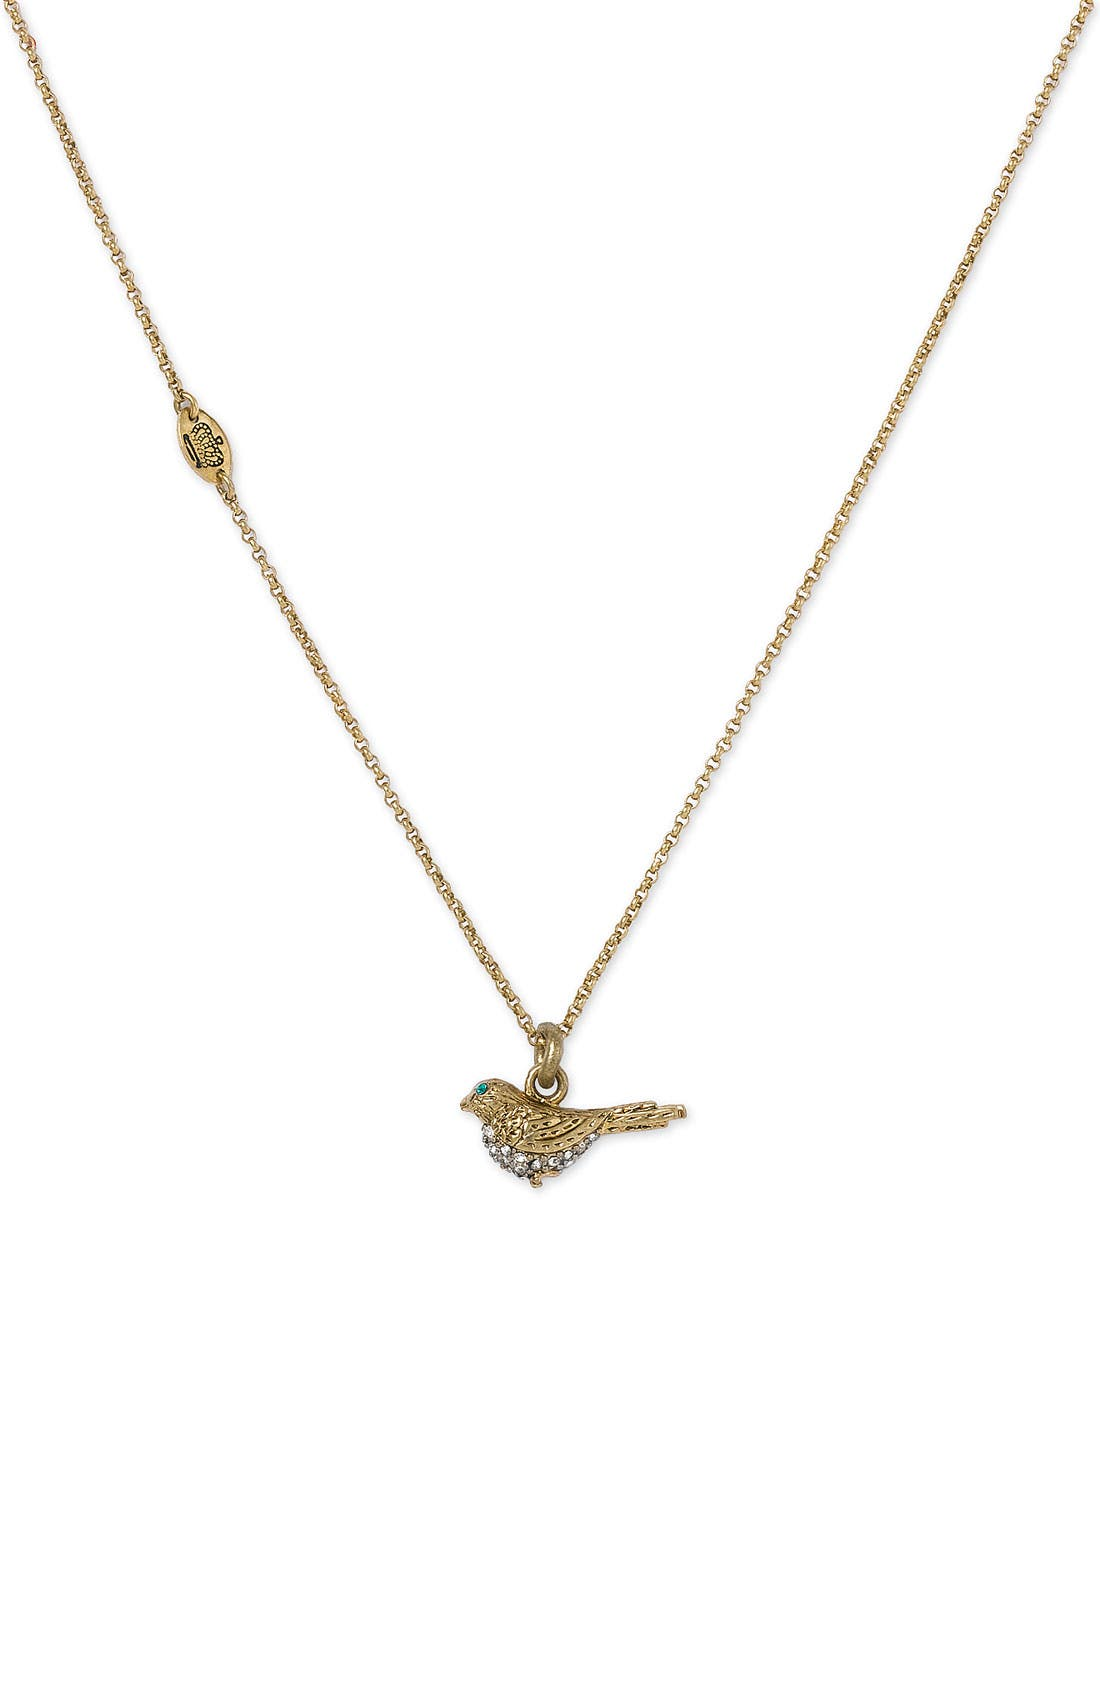 Alternate Image 1 Selected - Juicy Couture 'Wish' Sparrow Necklace